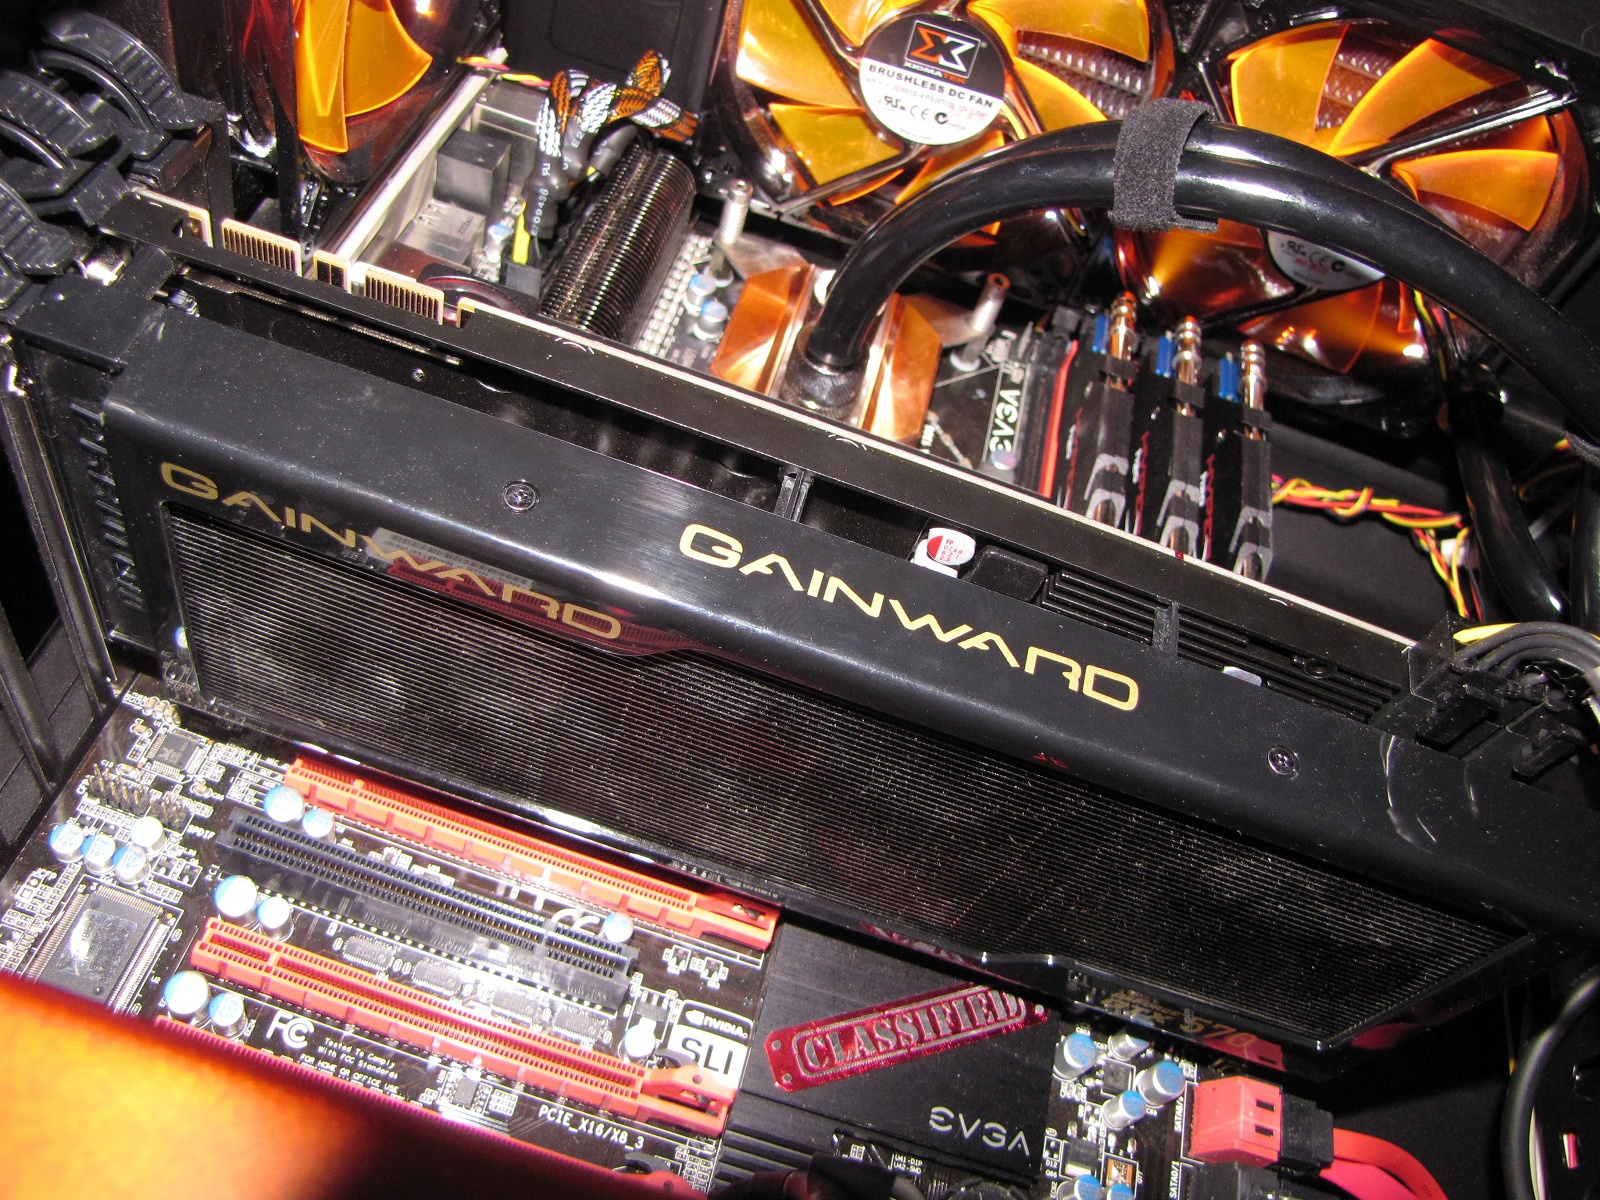 GTX 570 Phantom inside